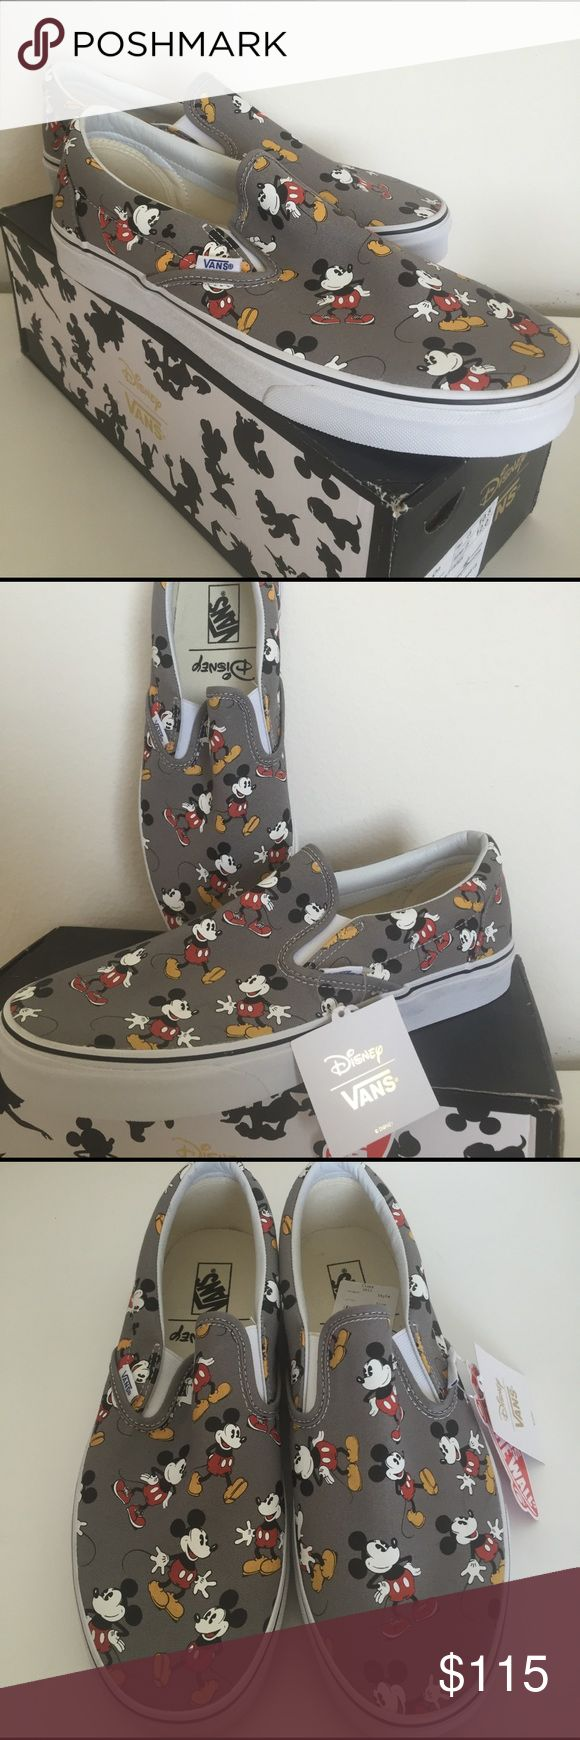 Disney Mickey Mouse Slip-on Vans Disney Original Mickey Mouse slip on vans. CLASSIC!  Men's Size 10.5 Vans Shoes Sneakers